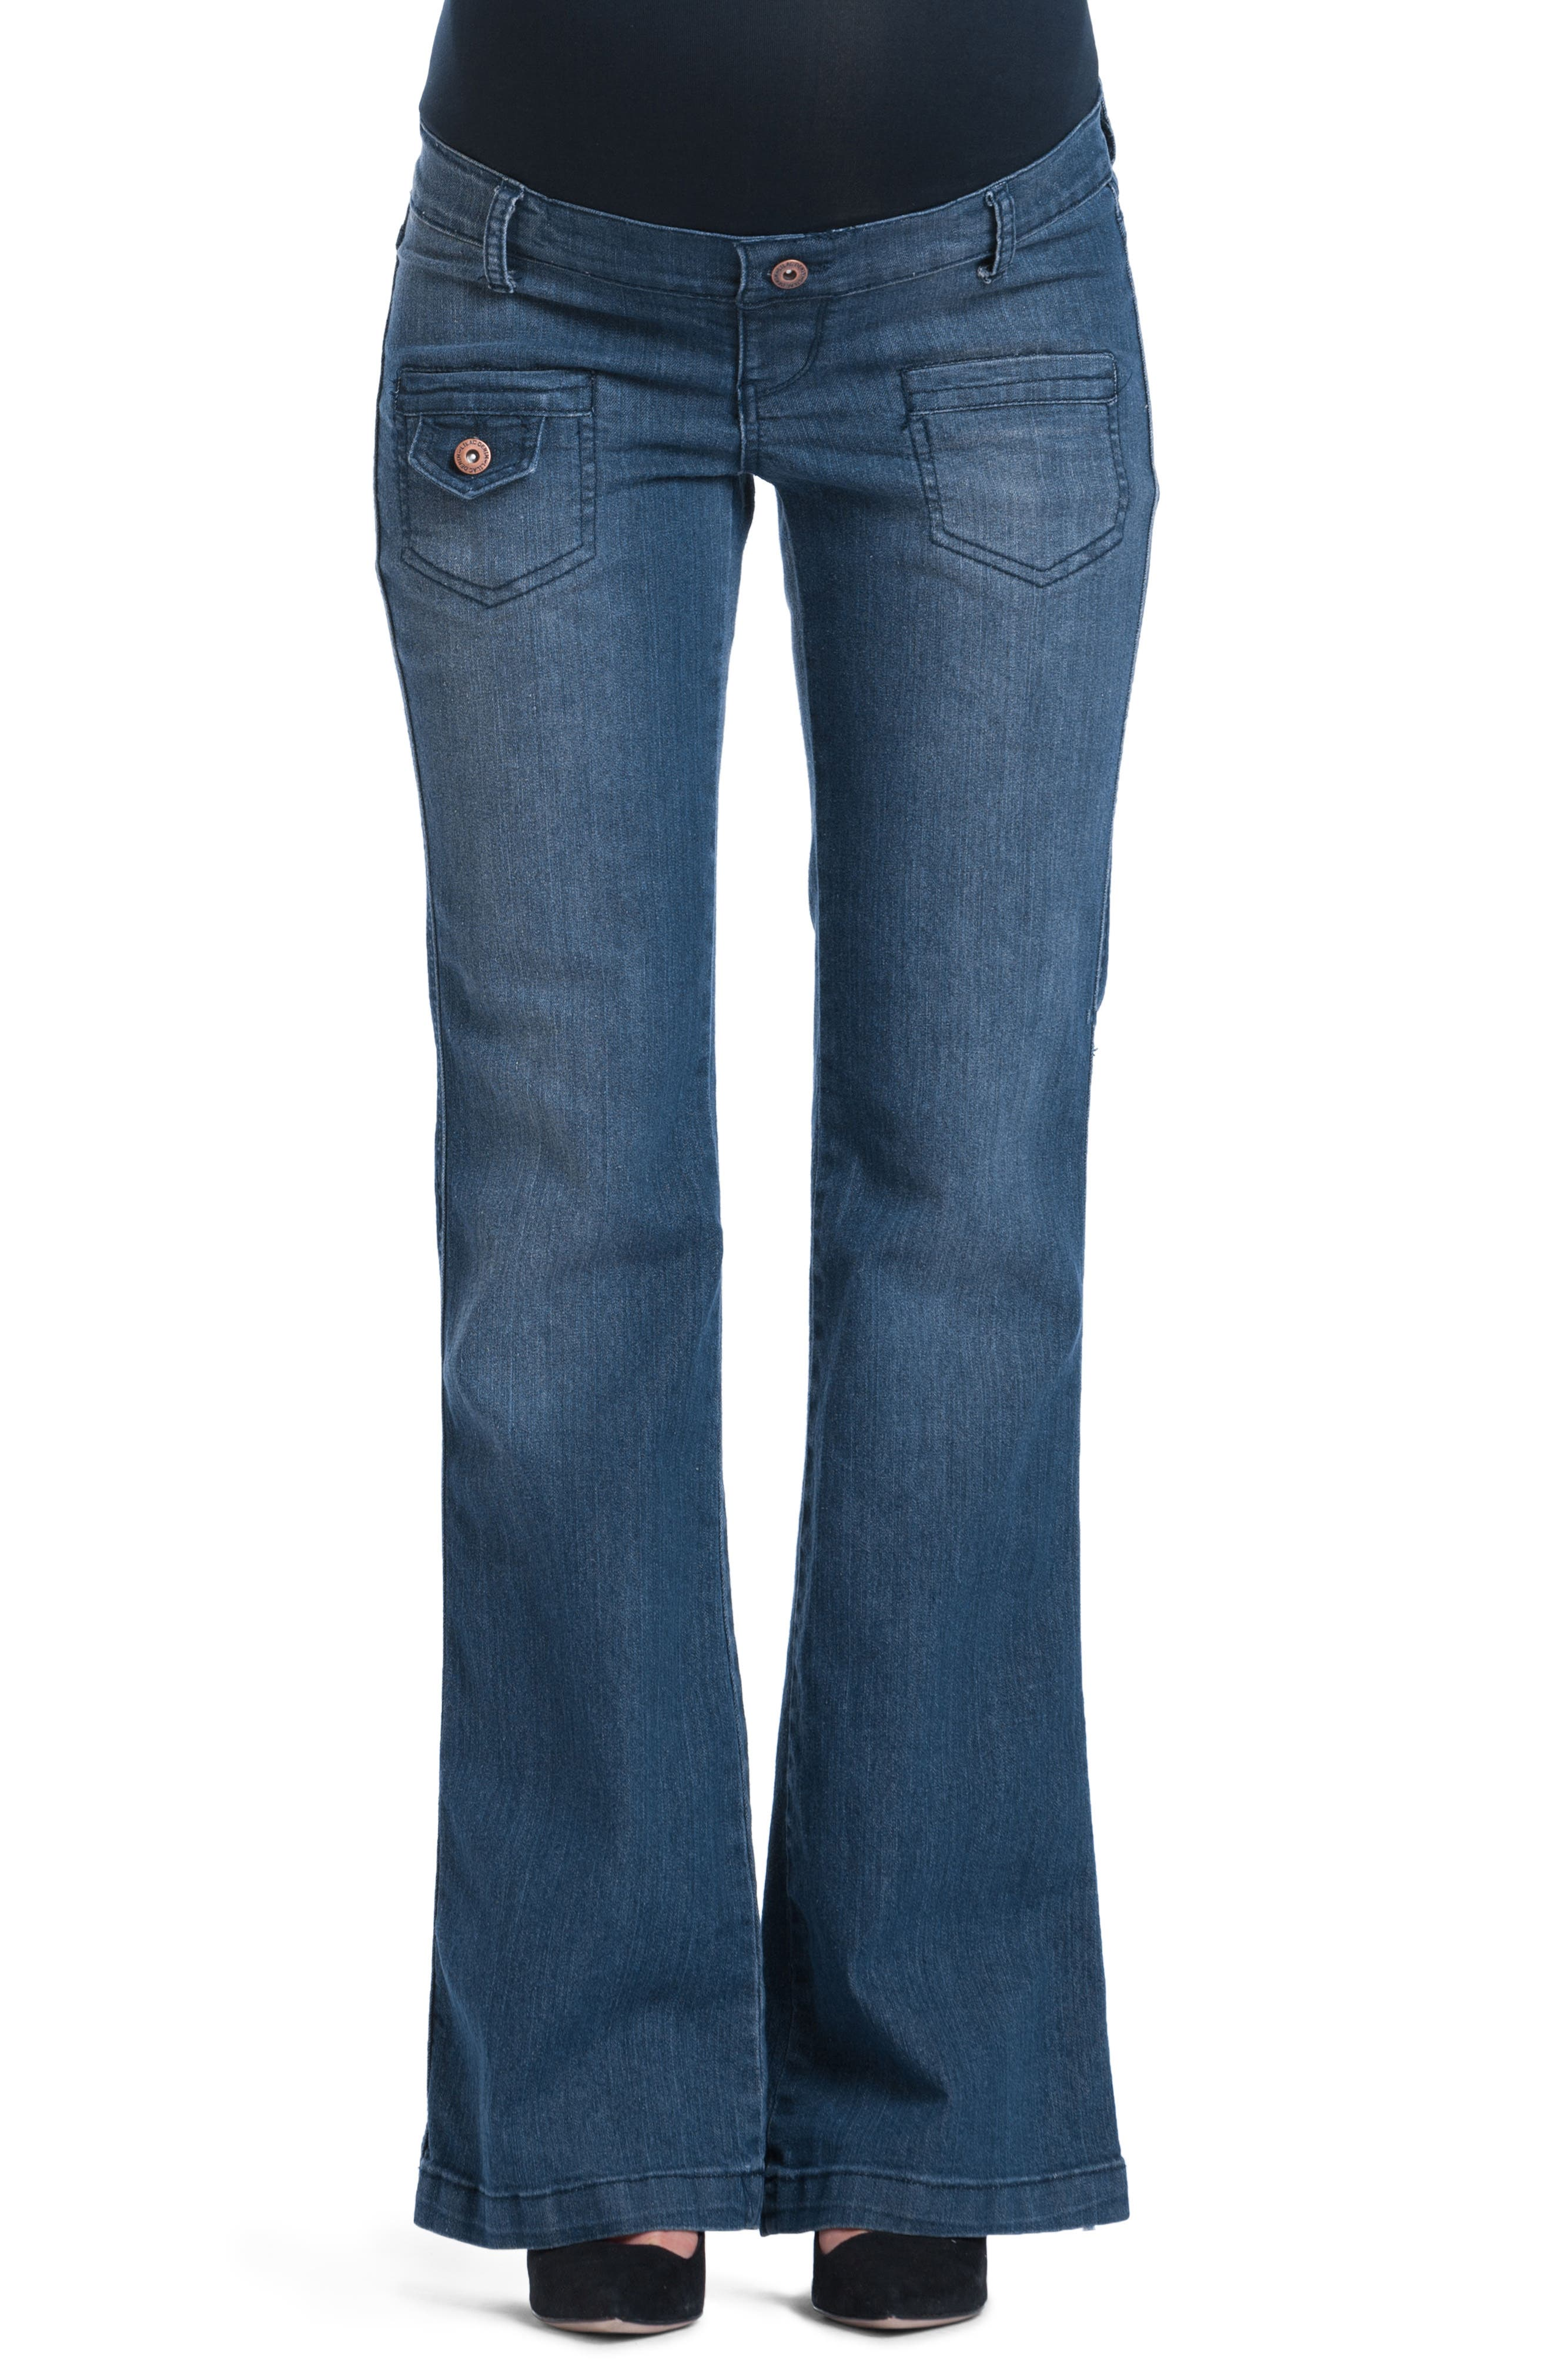 Flare Maternity Stretch Jeans,                         Main,                         color, Dark Wash